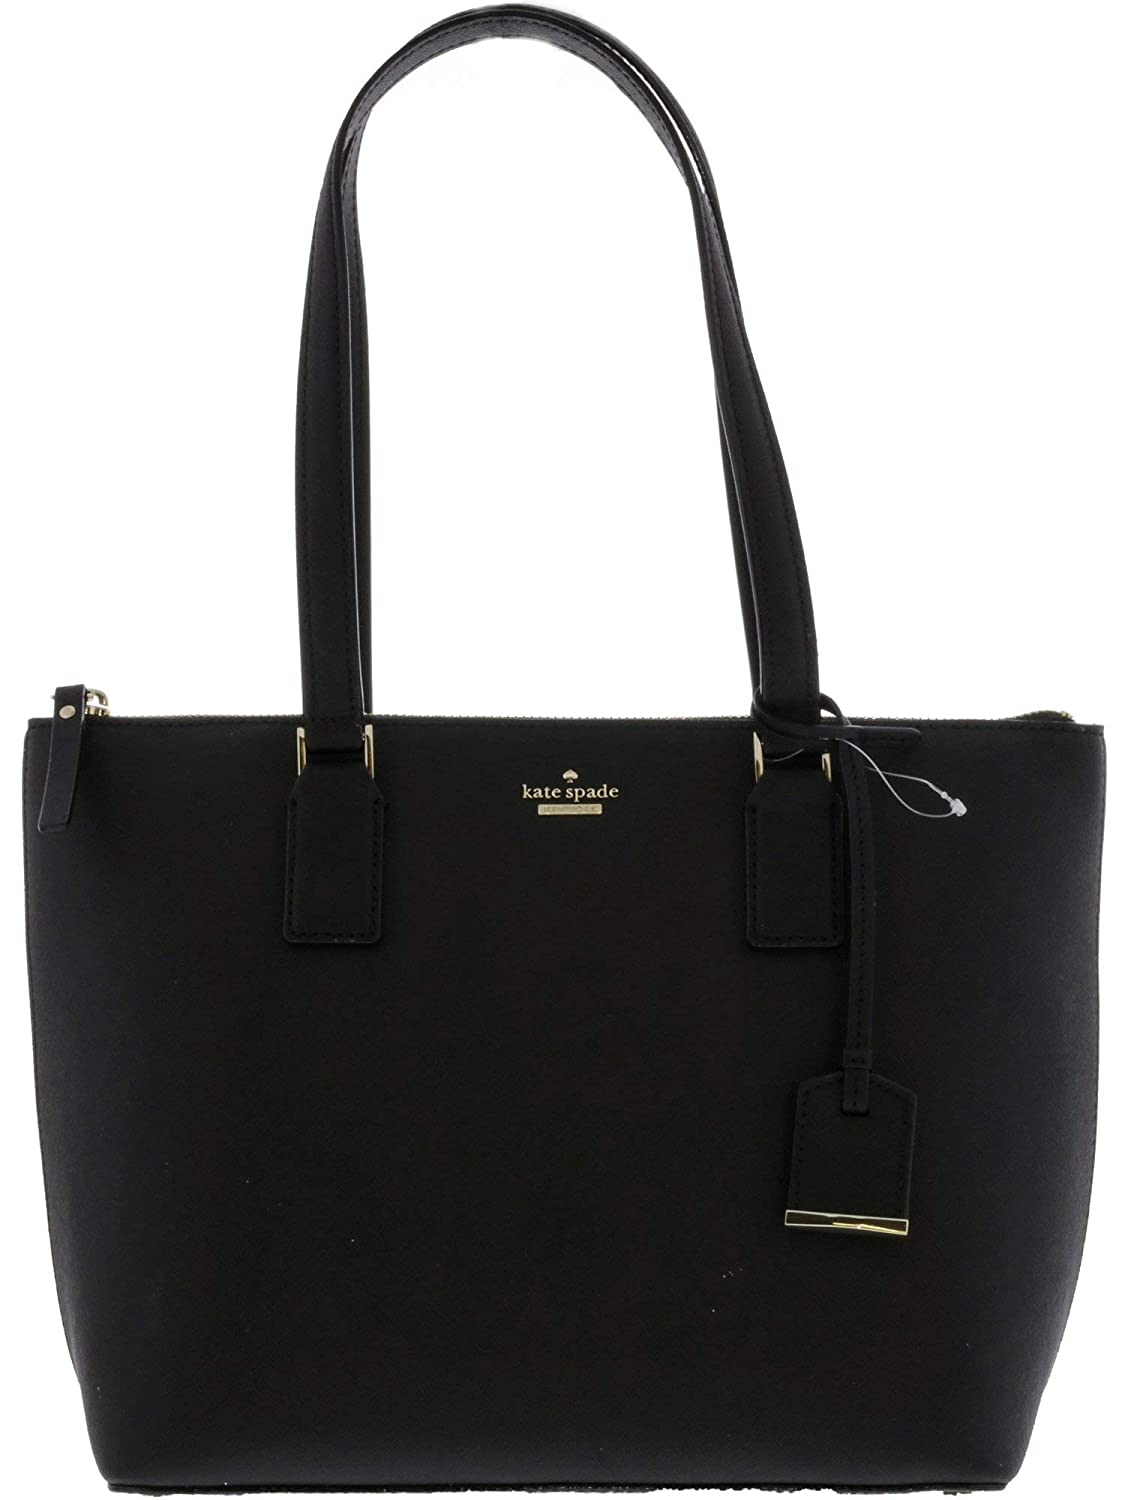 Kate Spade Women's Small Lucie Leather Tote Top-Handle Bag B06XNM12WW ブラック